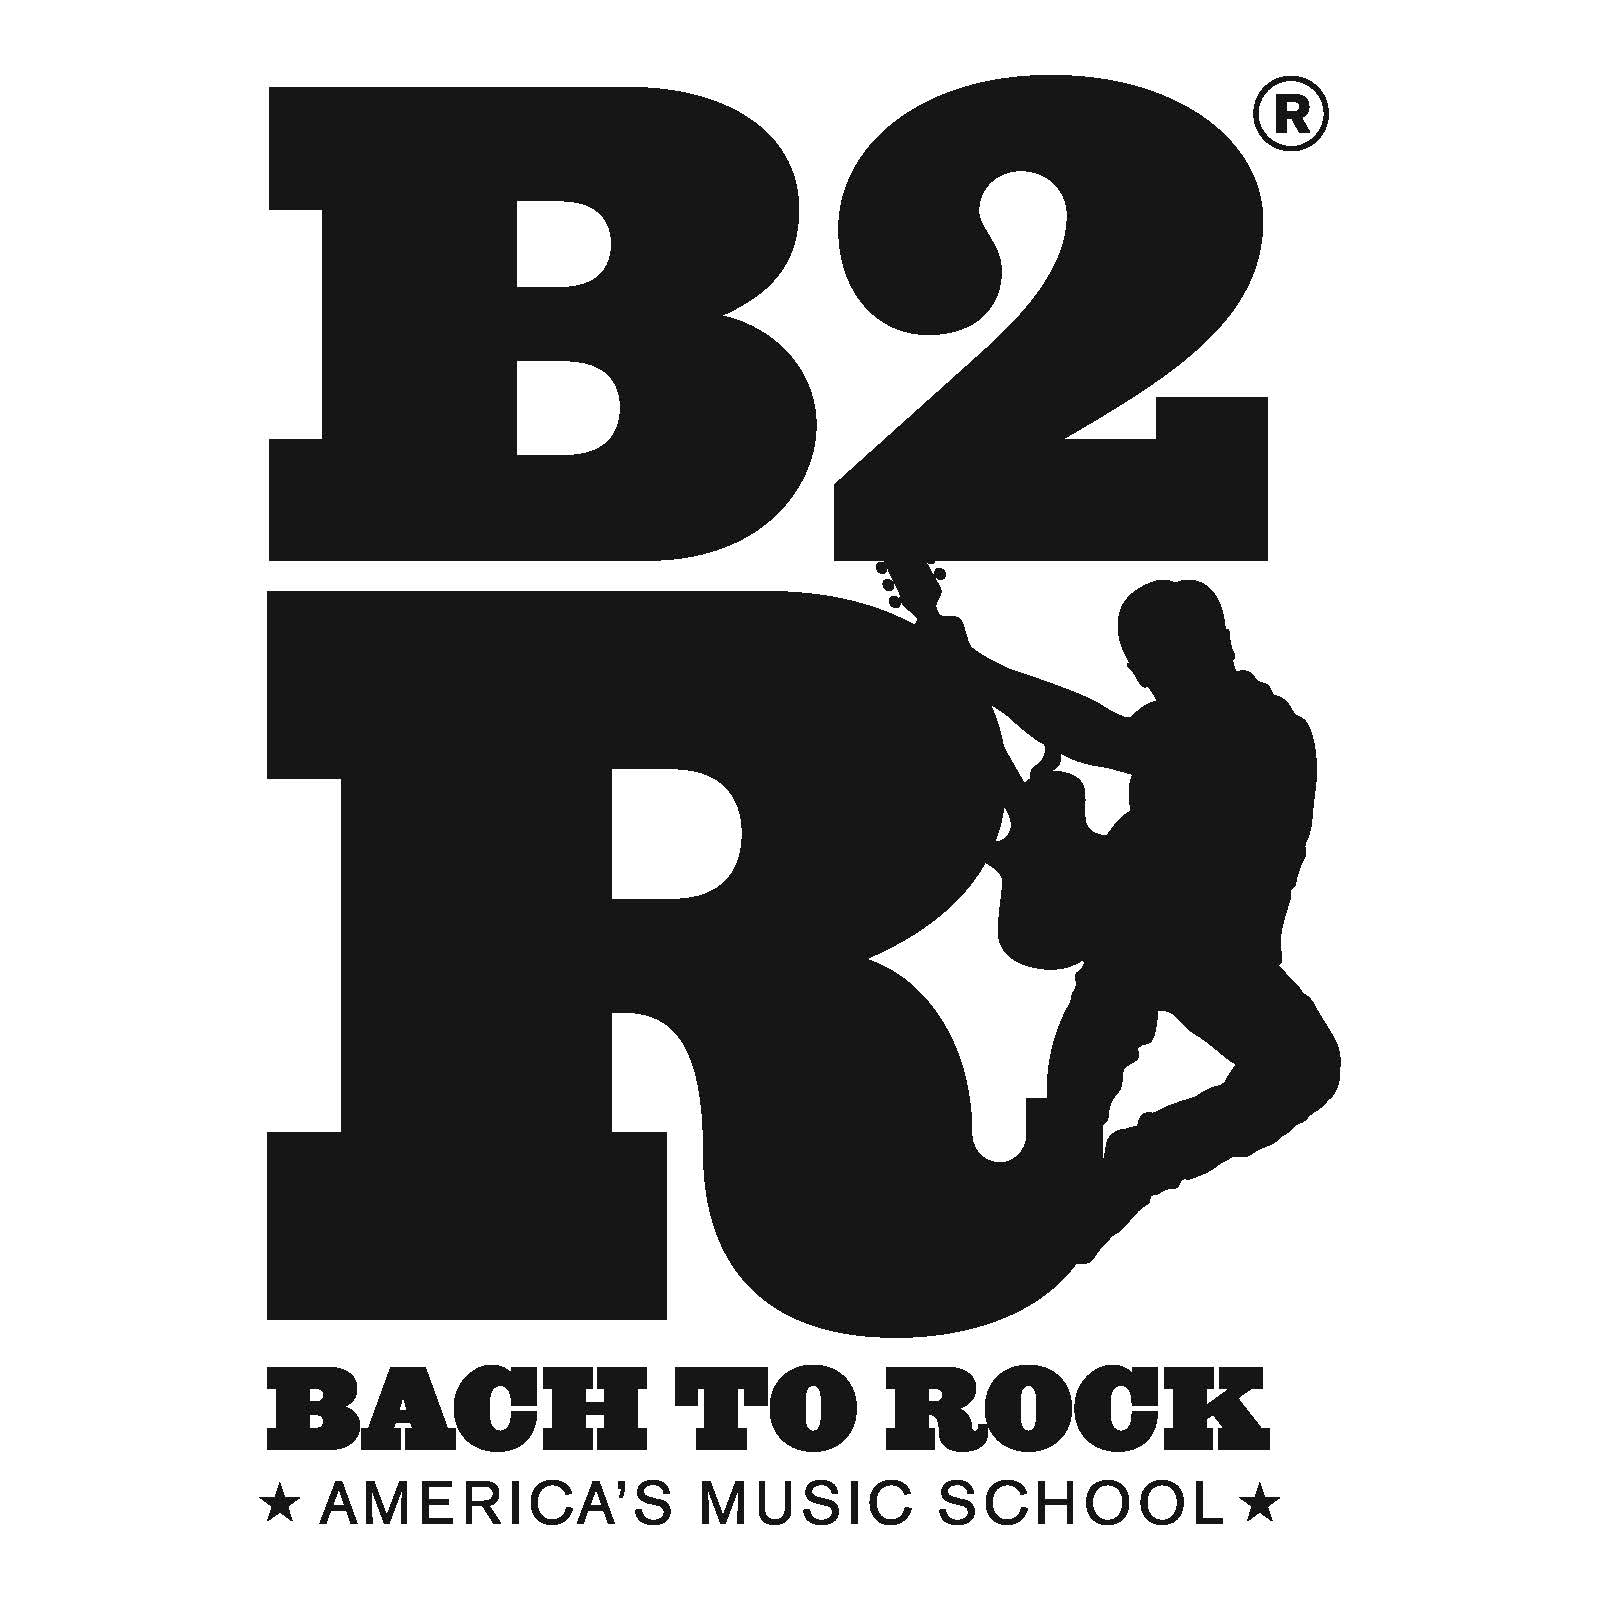 2017 Bach to Rock